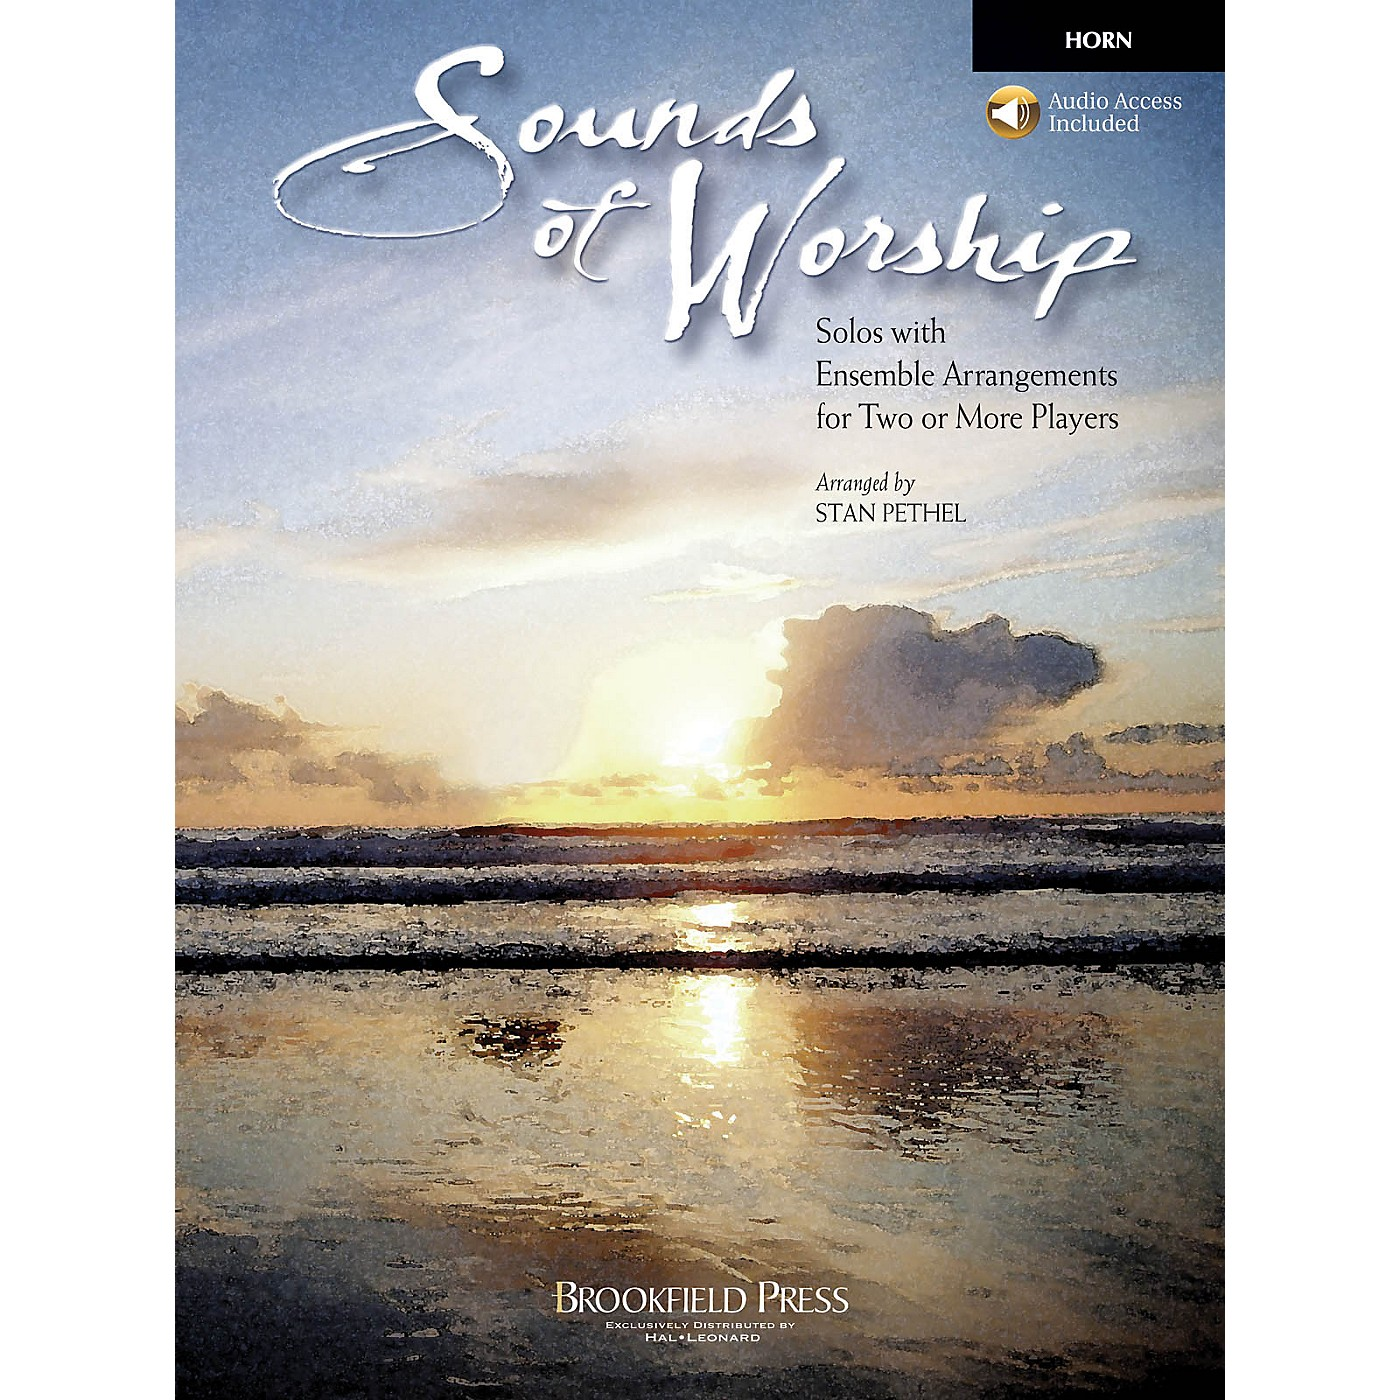 Brookfield Sounds of Worship F Horn arranged by Stan Pethel thumbnail